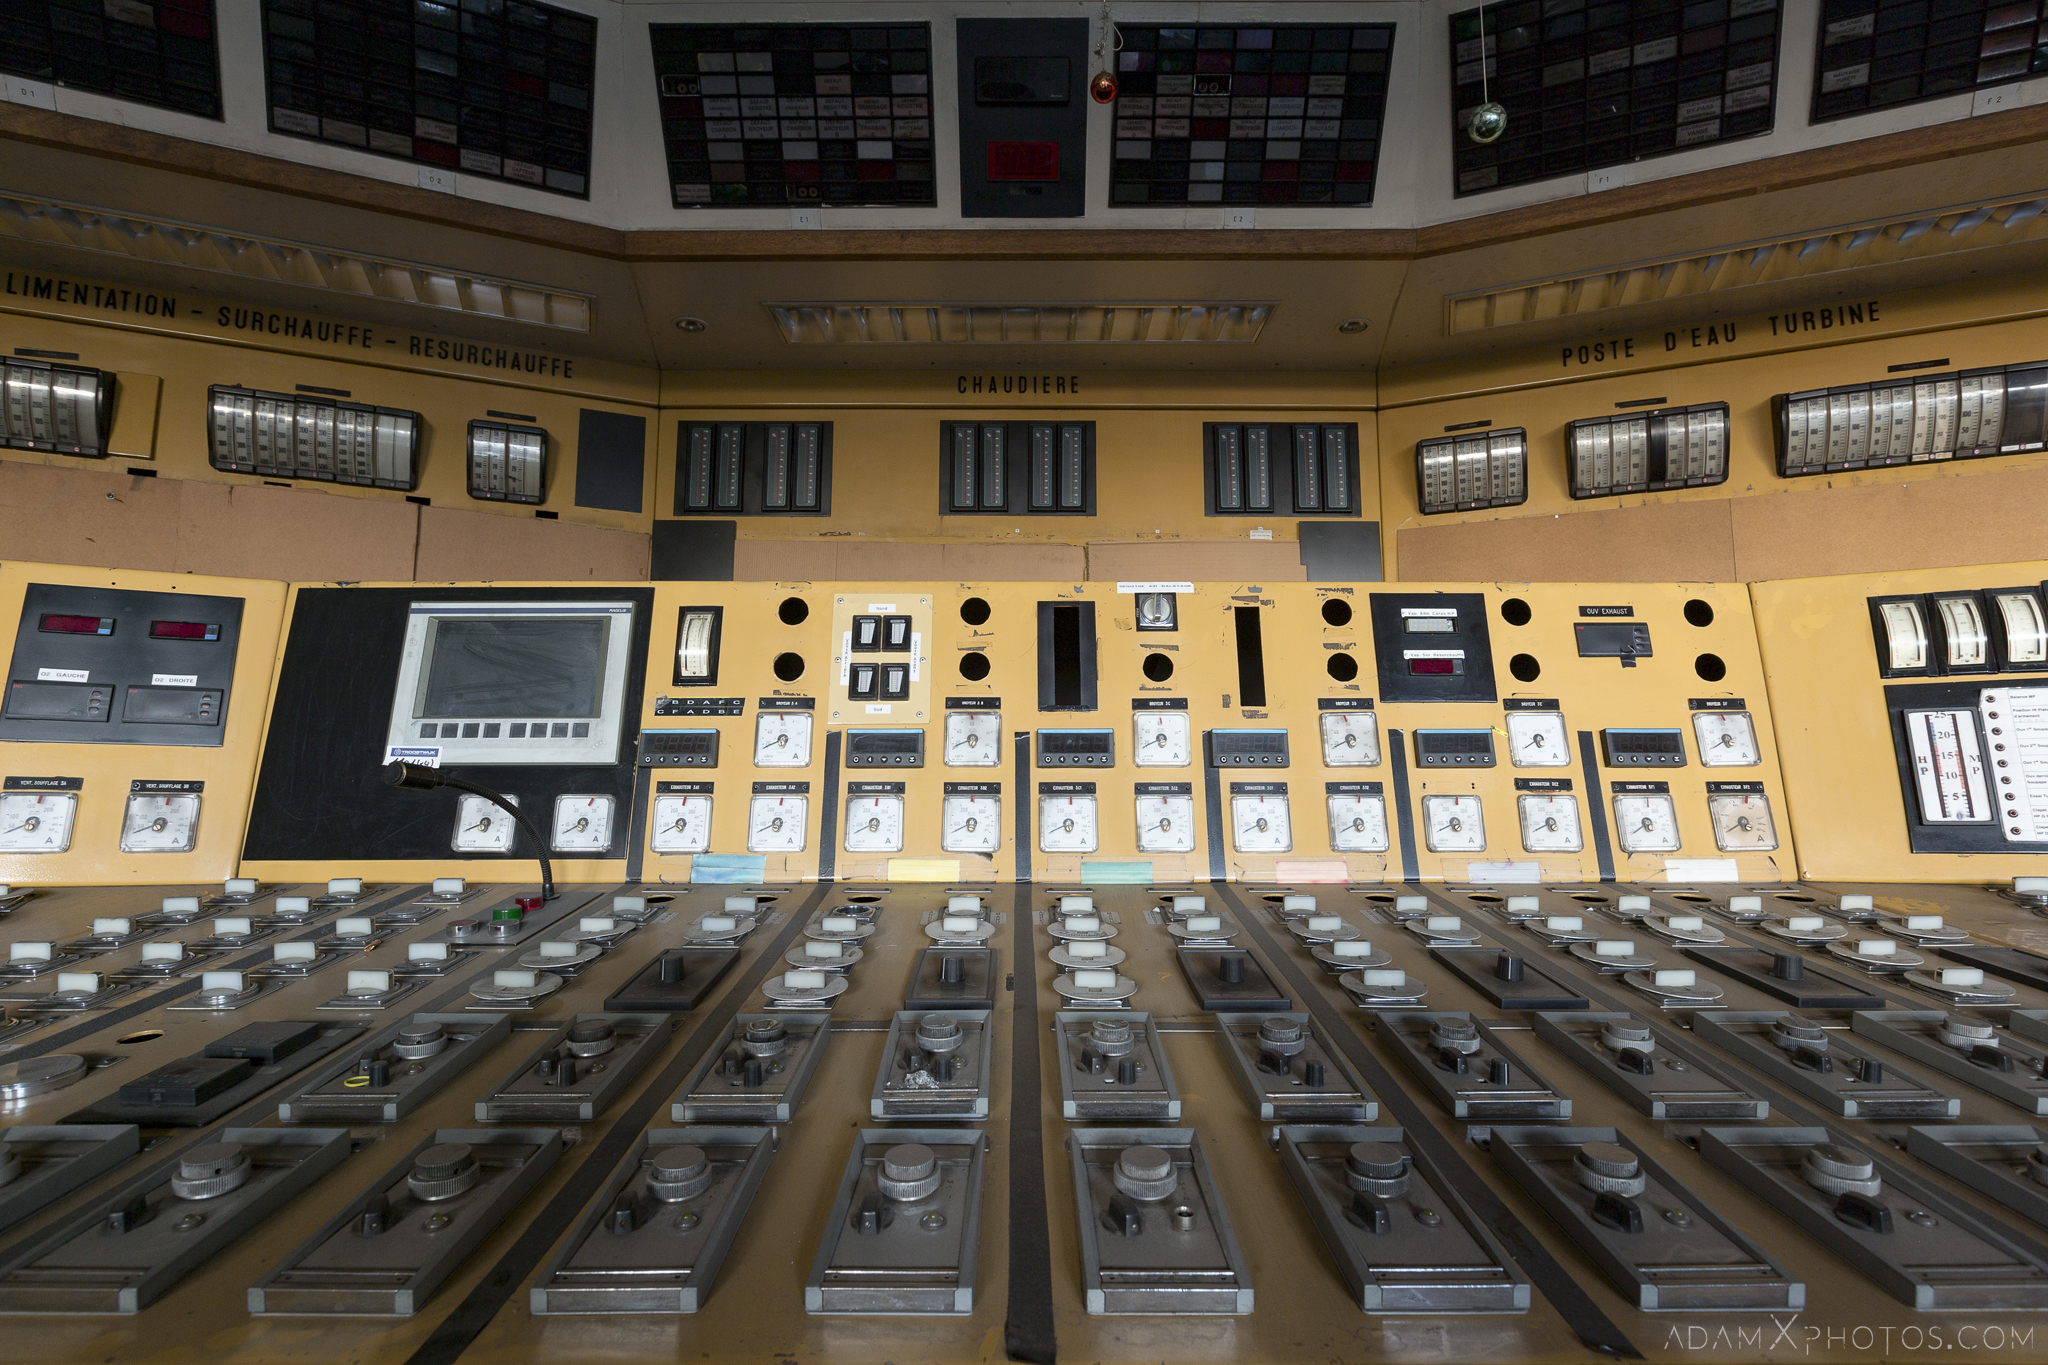 yellow control room details Centrale de schneider powerplant power plant industrial industy Adam X Urban Exploration France Access 2017 Abandoned decay lost forgotten derelict location creepy haunting eerie